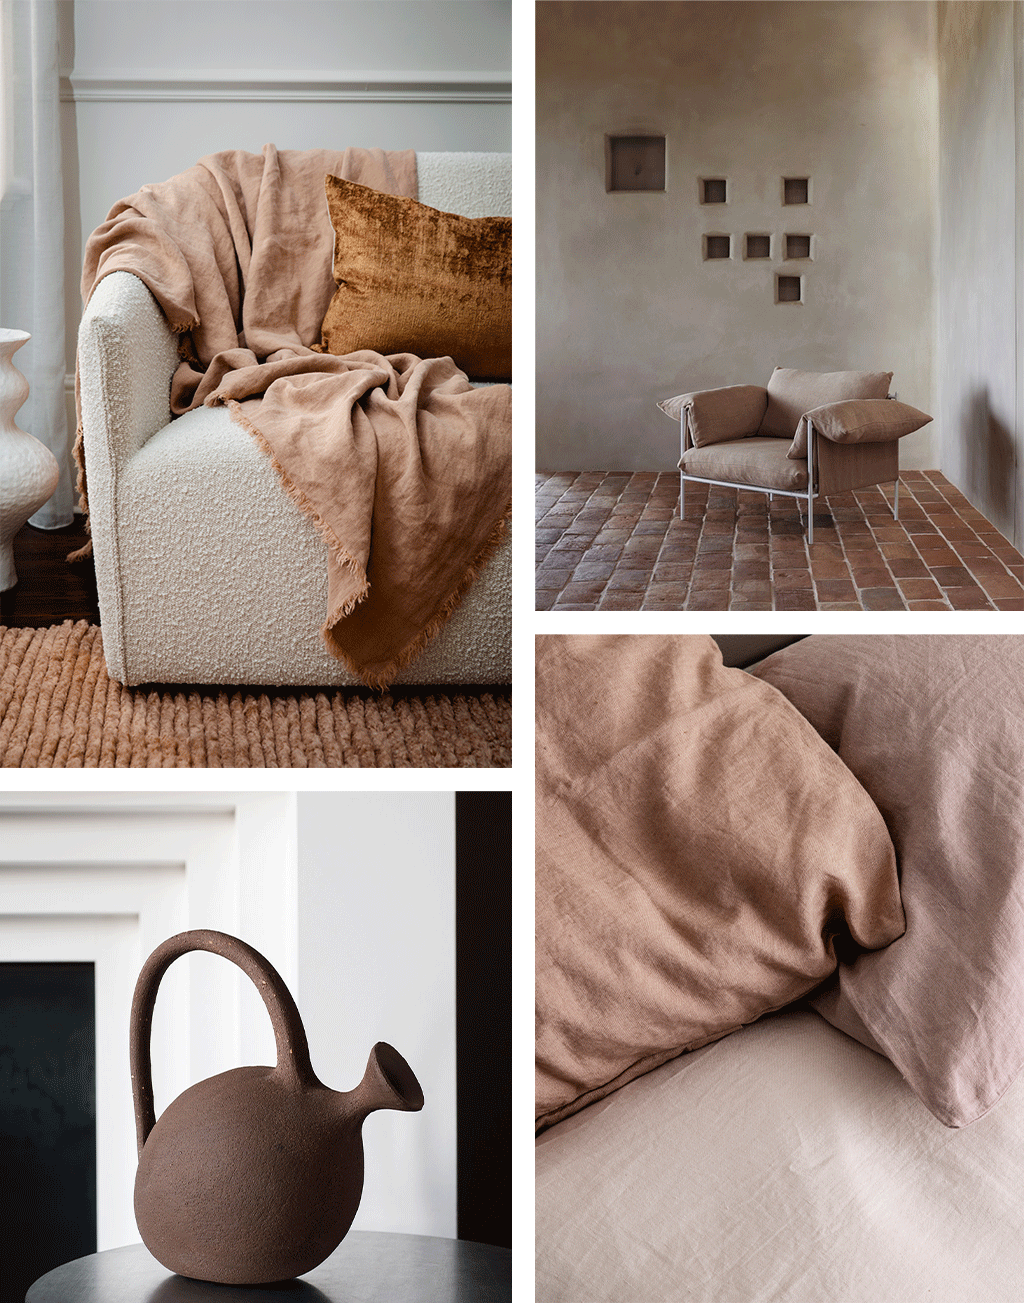 A collage of images. 1. The Talik Velvet Cushion in Fawn and The Freya Linen Throw in Fawn draped over a white boucle sofa. 2. The Alva Lounge Chair by Sarah Ellison place in the corner of a room. 3. The Aqua Regis Vase by Studio Pepe. 4. A close up of the Linen Pillowcases in Fawn, Dusk and Blush.